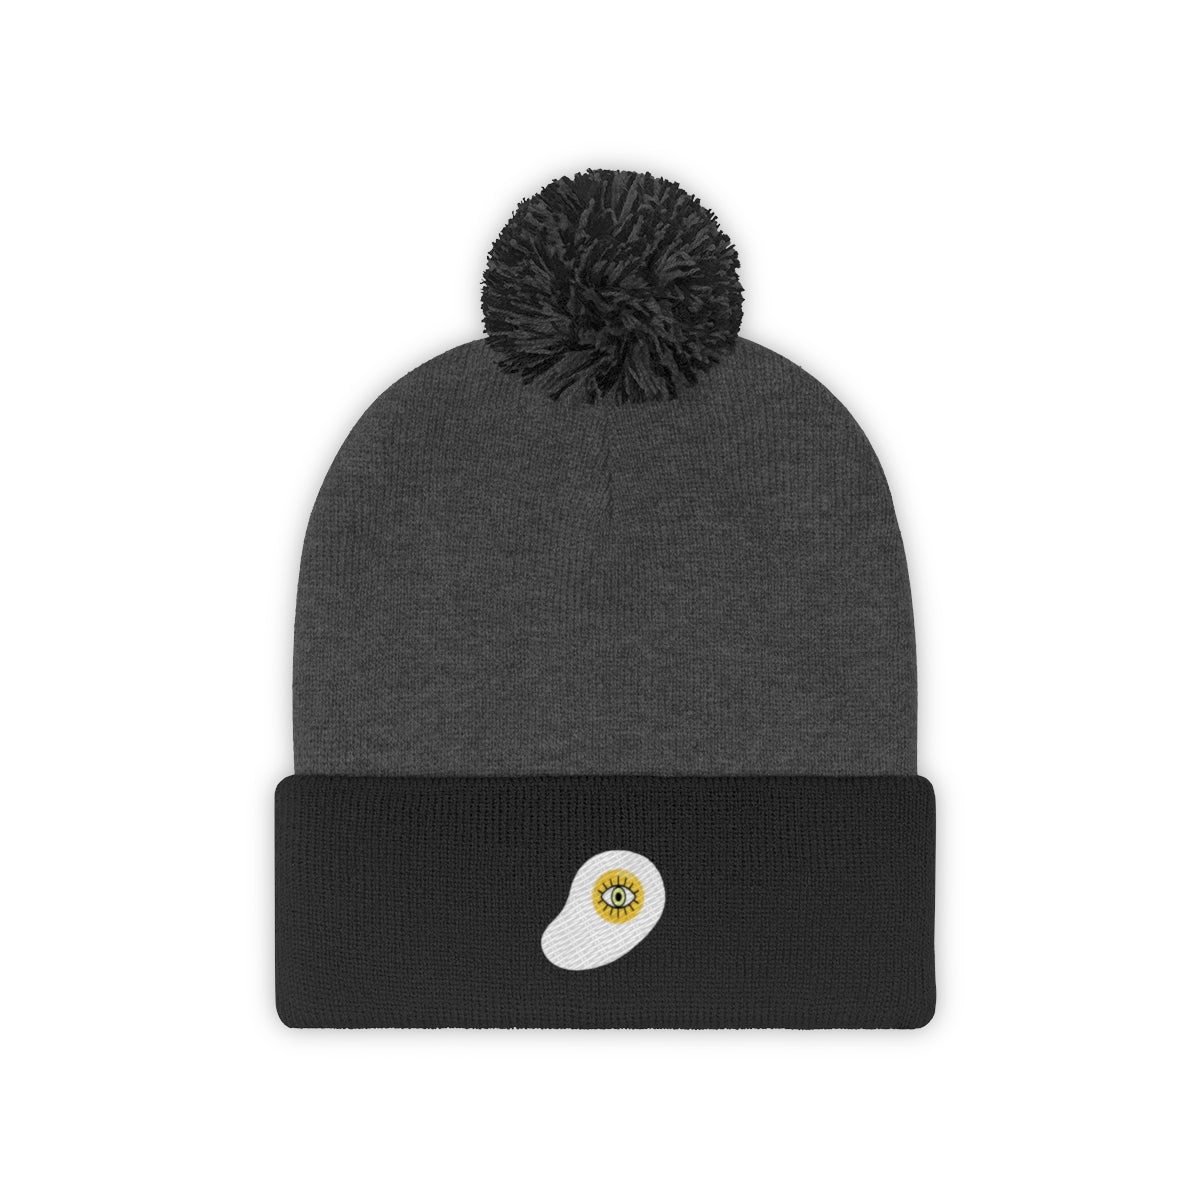 All Seeing Yolk Beanie